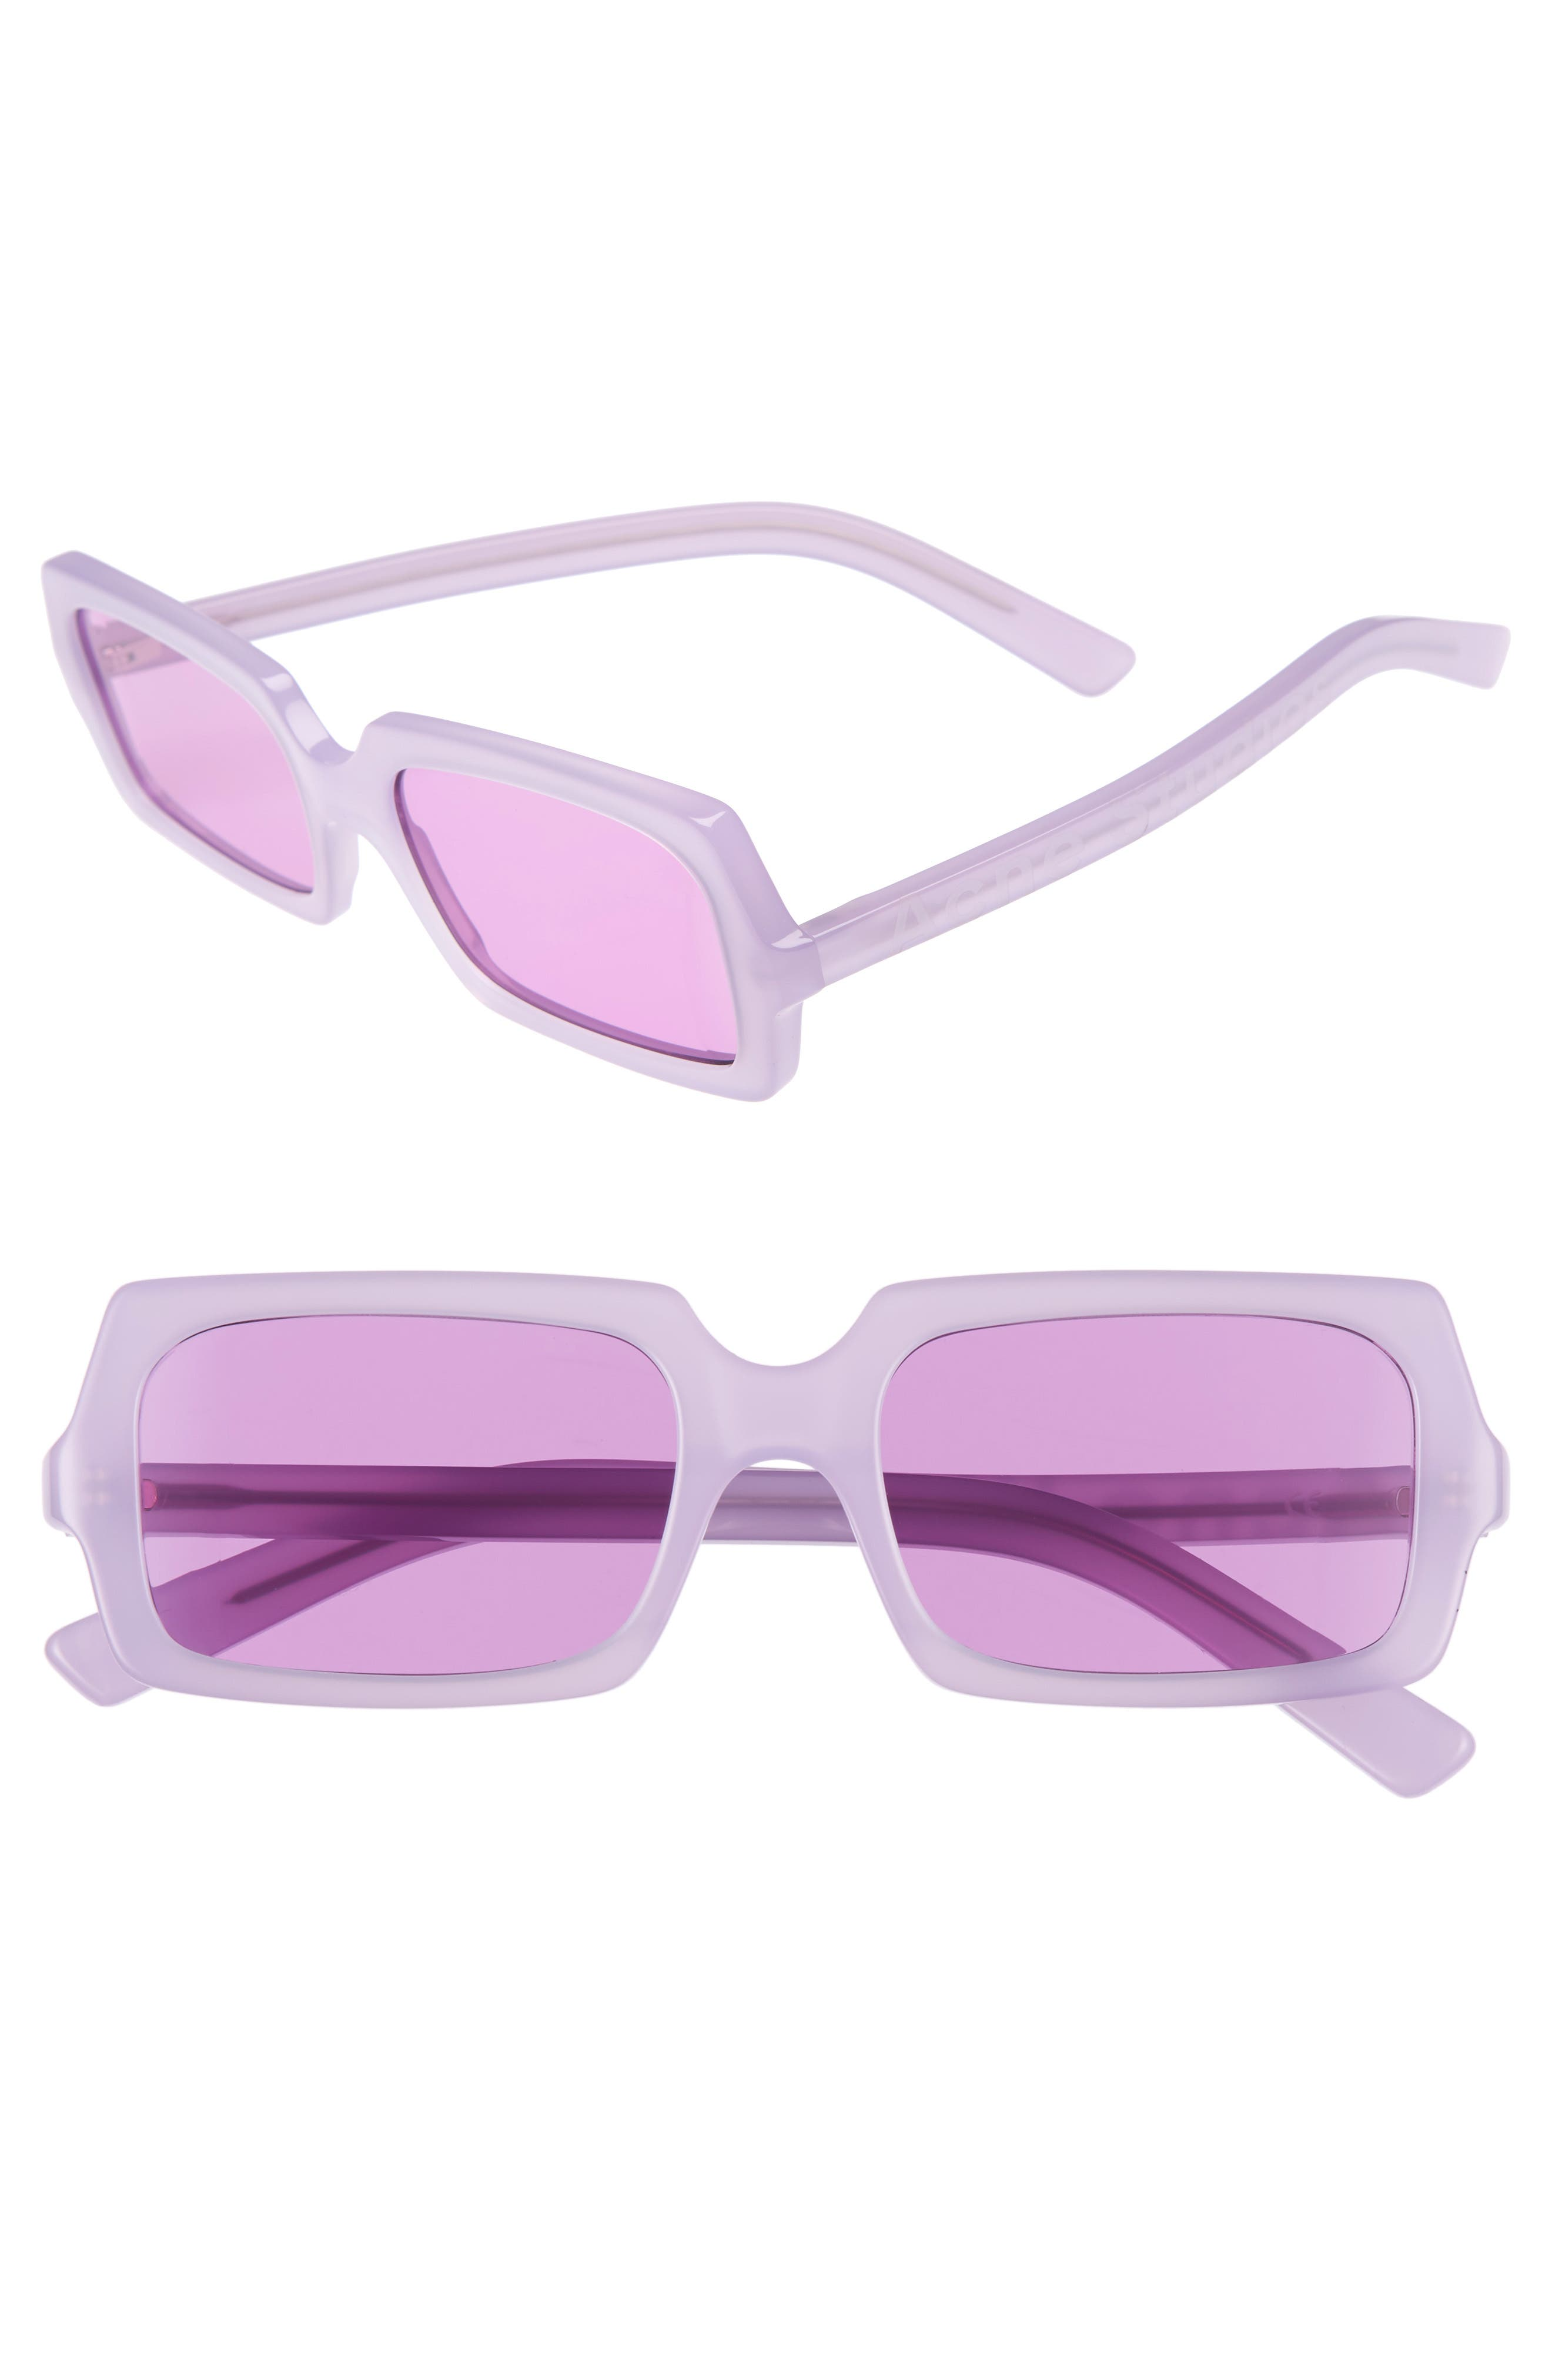 George Sunglasses,                             Main thumbnail 1, color,